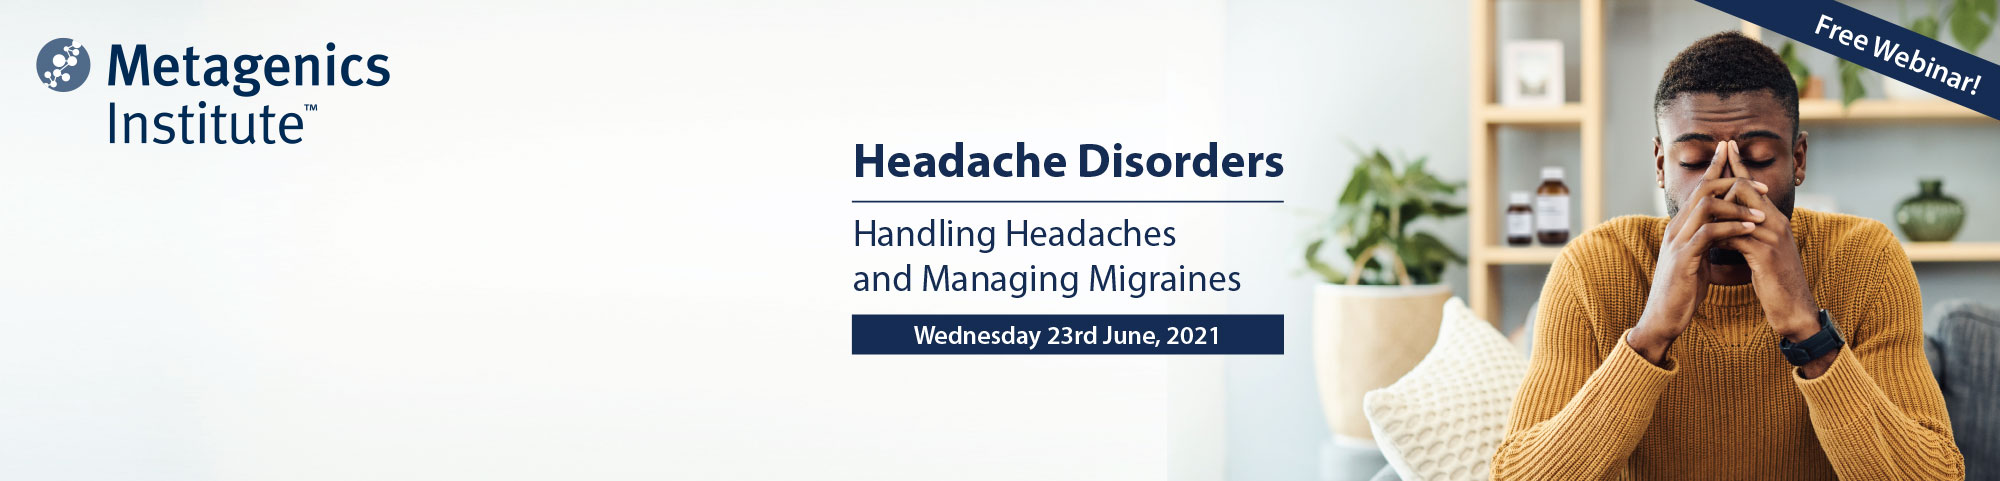 Headache Disorders Webinar